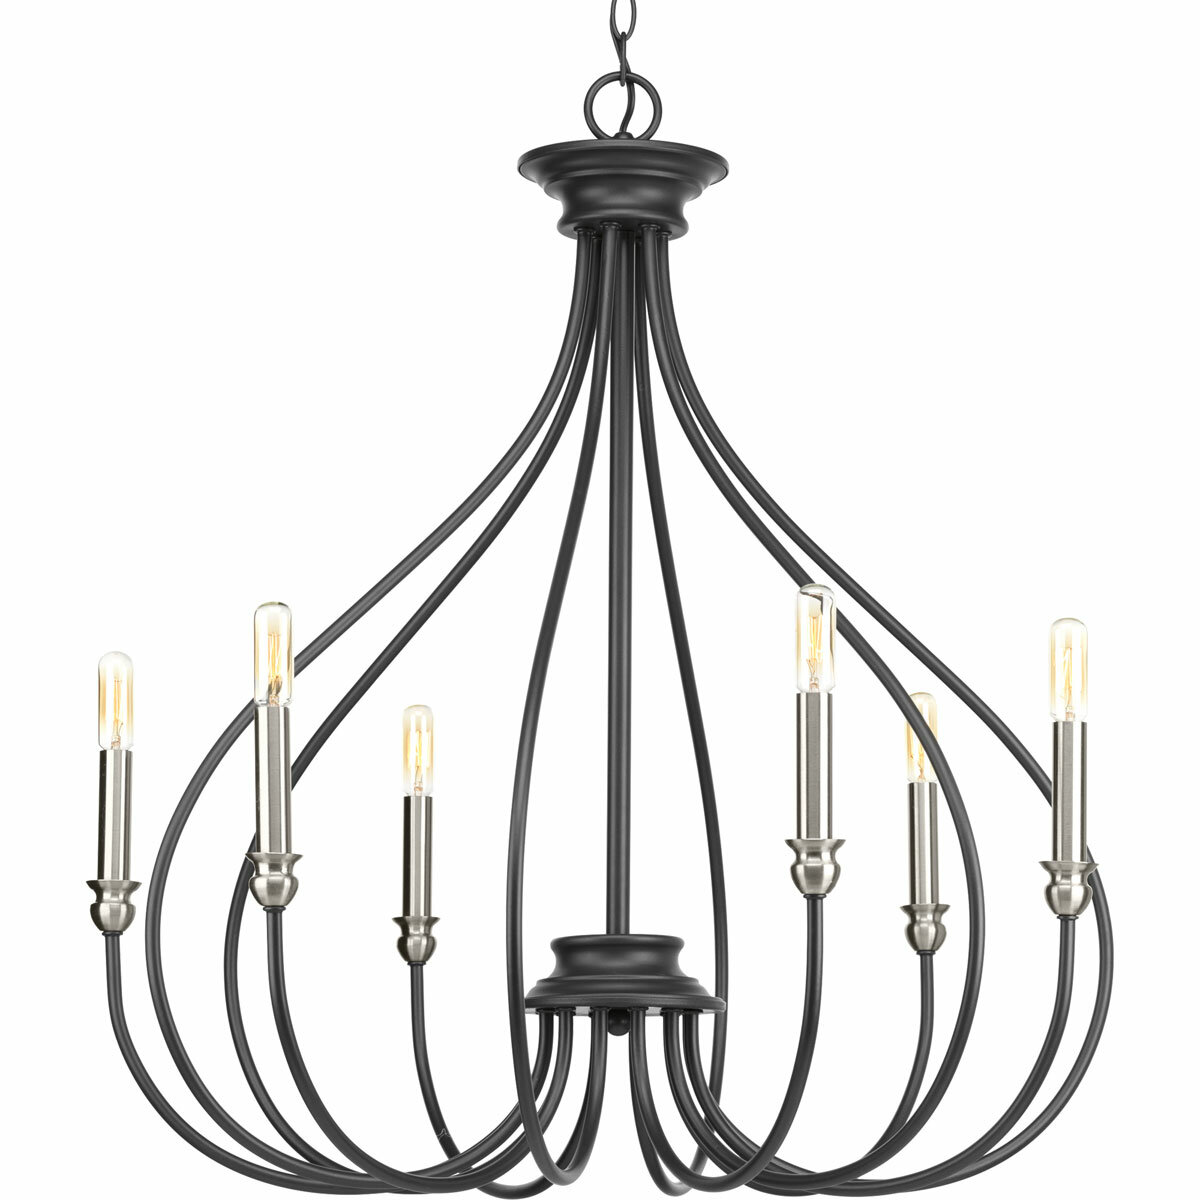 Gracie oaks chaney 6 light candle style chandelier reviews wayfair